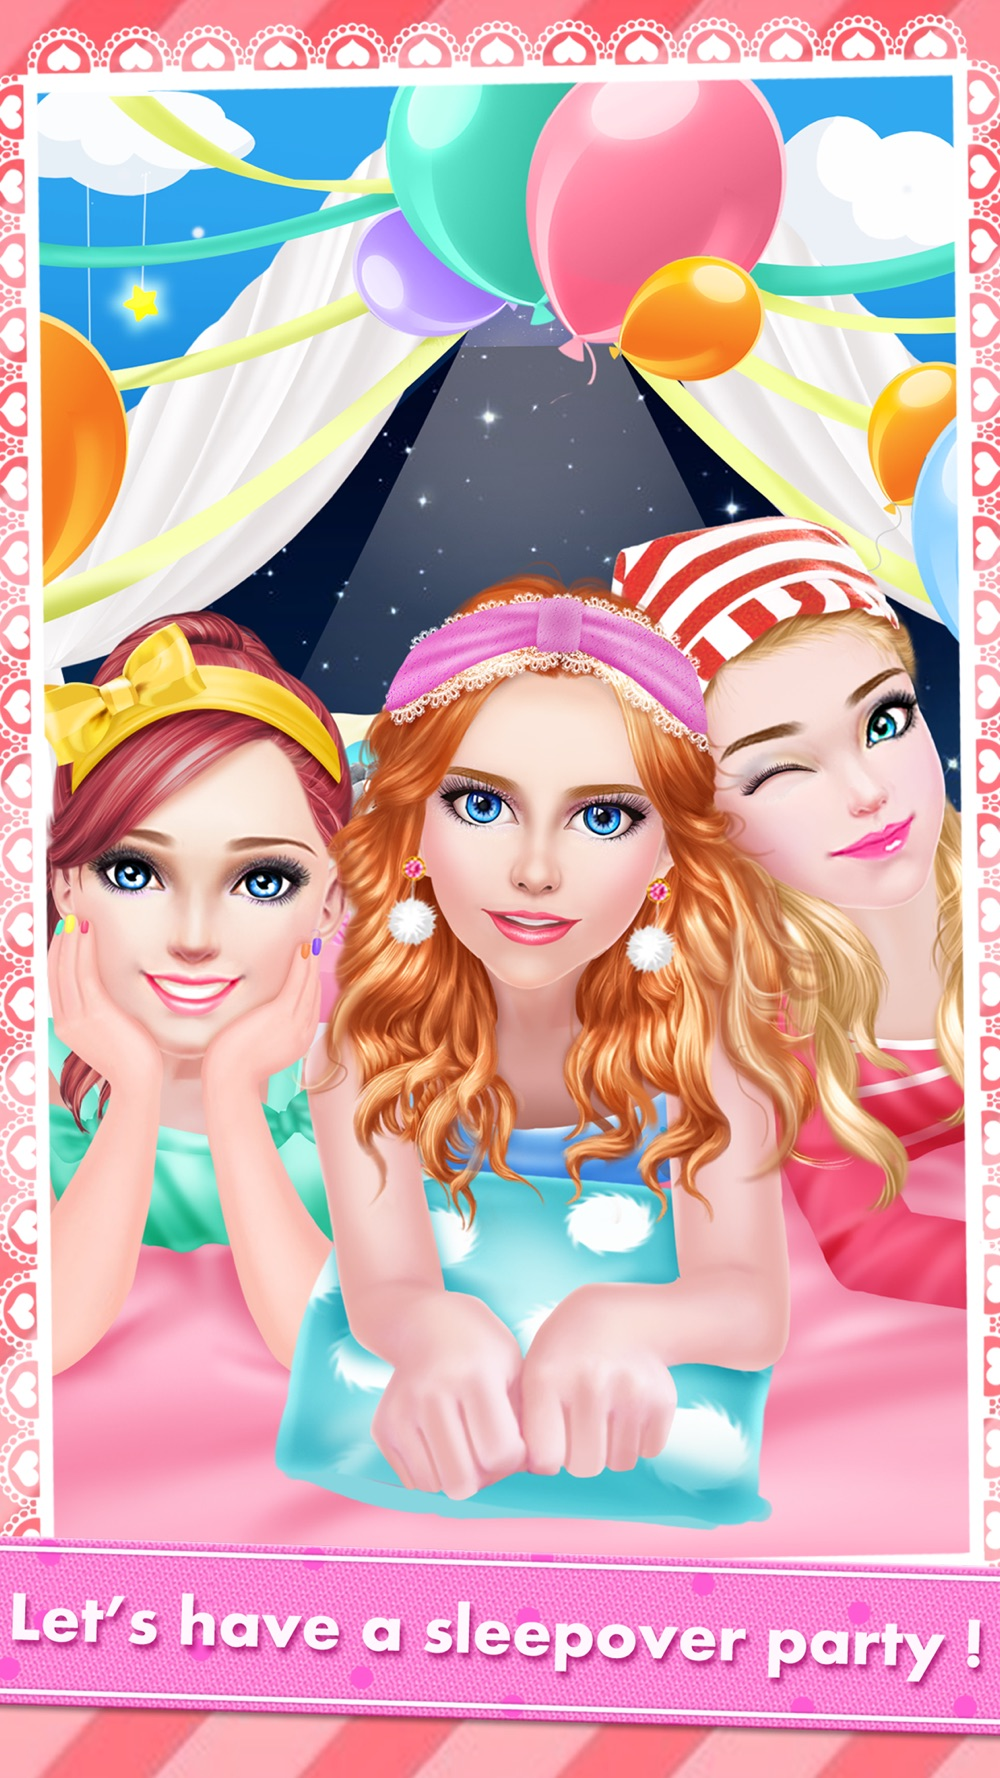 High School PJ Party – Girls Sleepover Salon with Summer SPA, Makeup & Makeover Games Cheat Codes